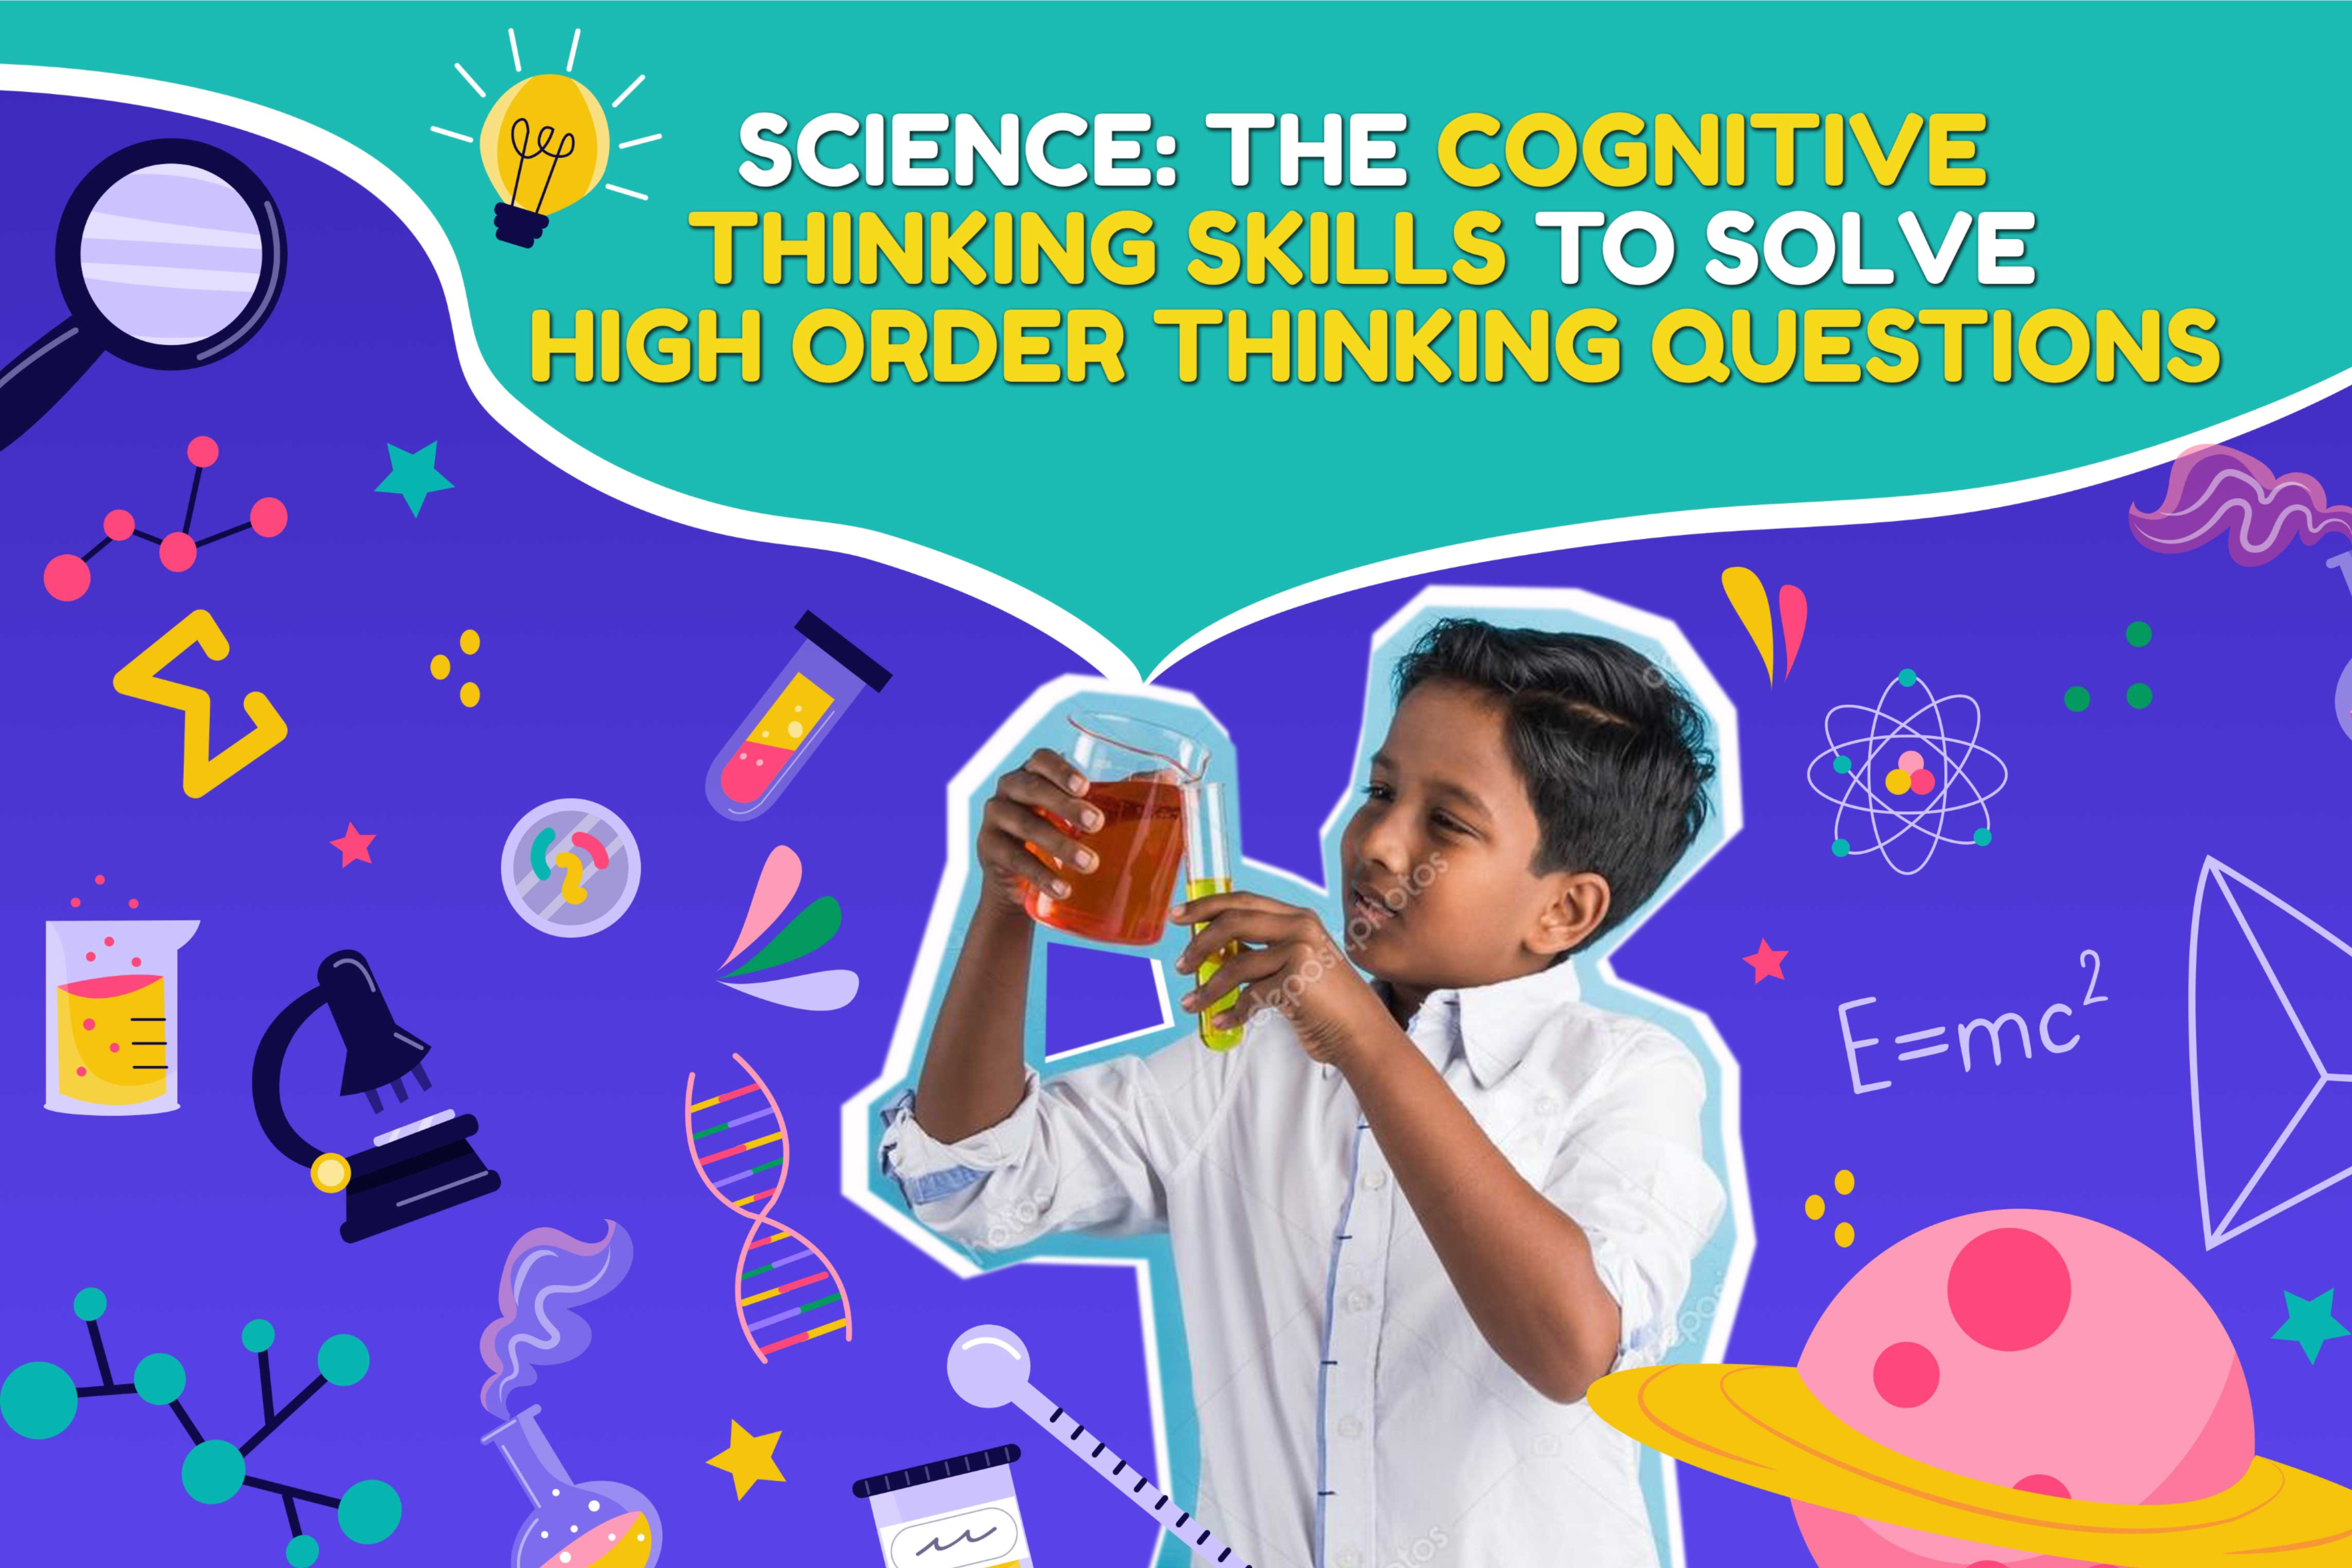 (P5, P6 in 2021) Science Cognitive Thinking Skills to Solve Higher Order Thinking Questions